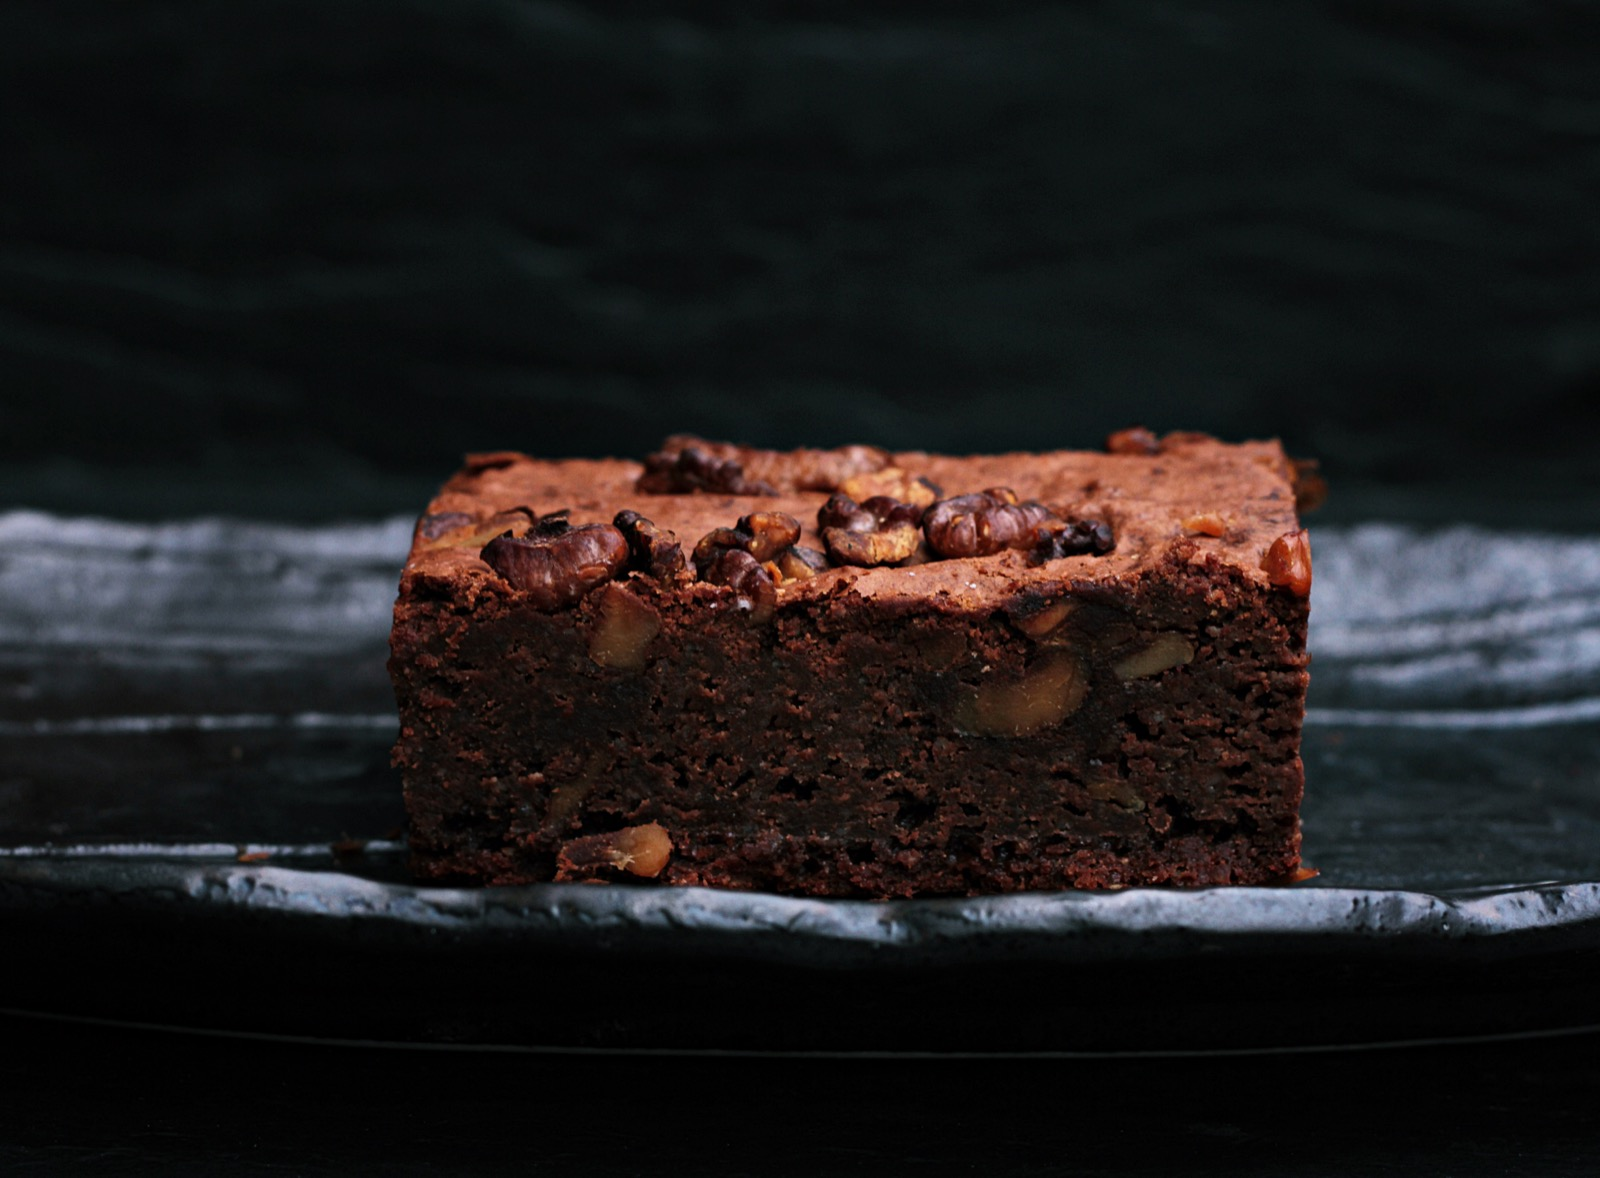 Chocolate brownies and other treats